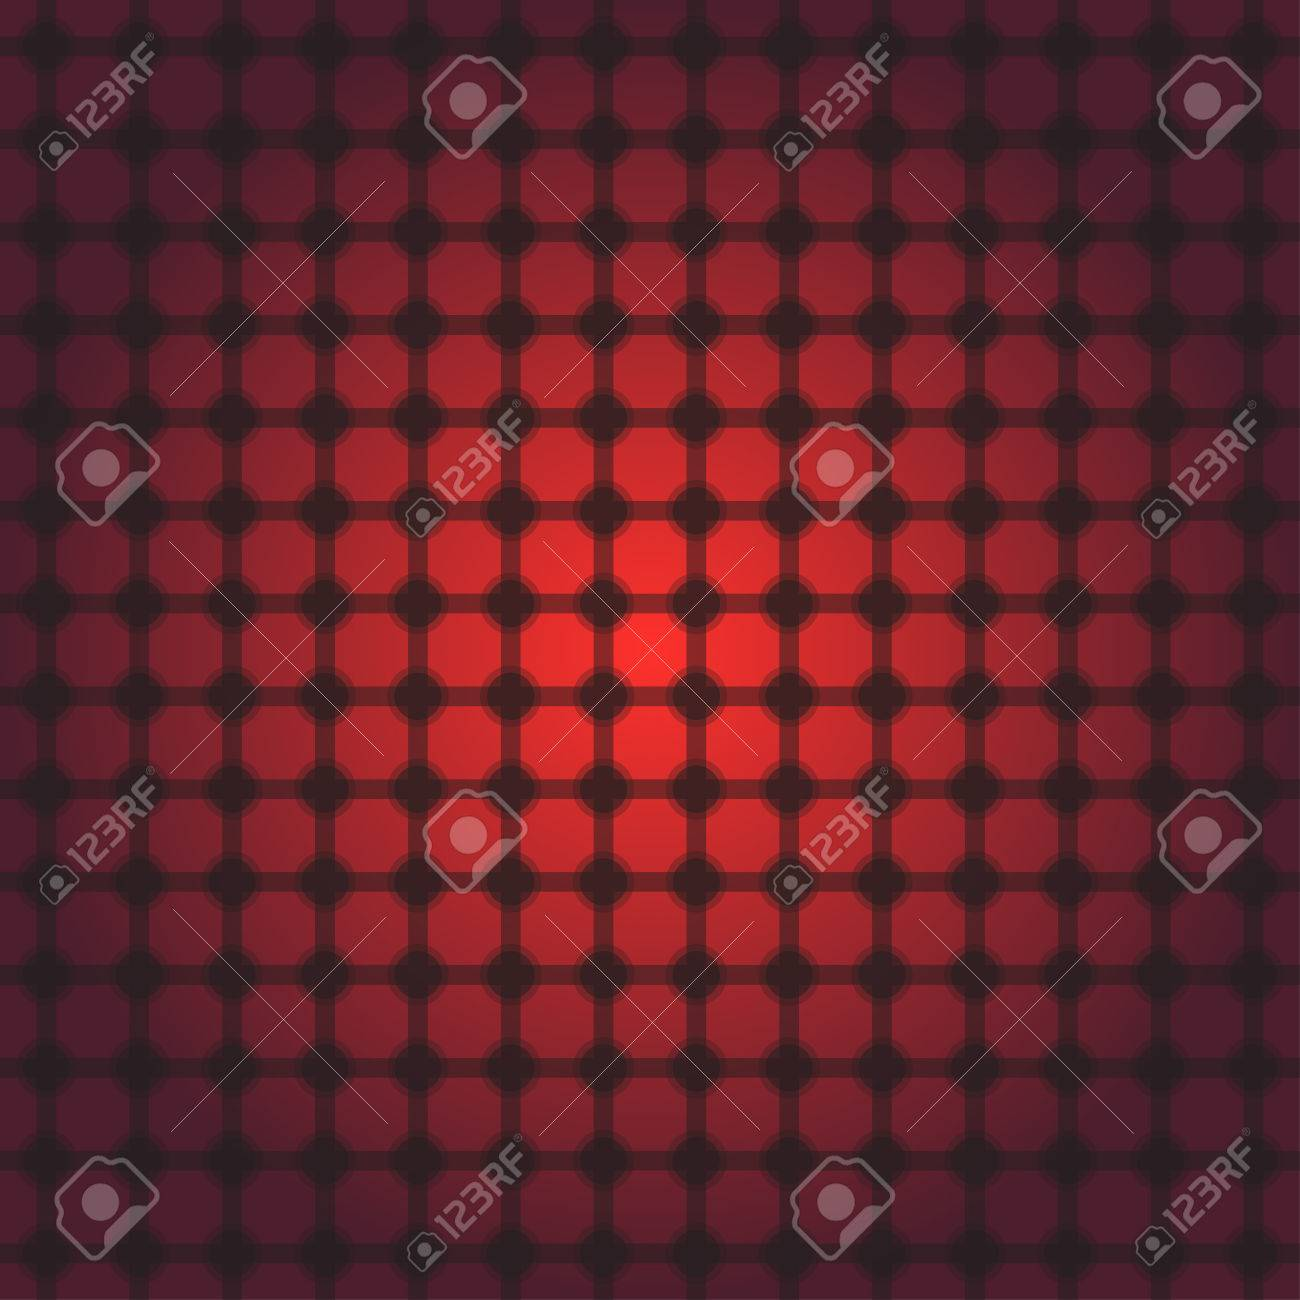 red and black transparent square and circle grid with transparent